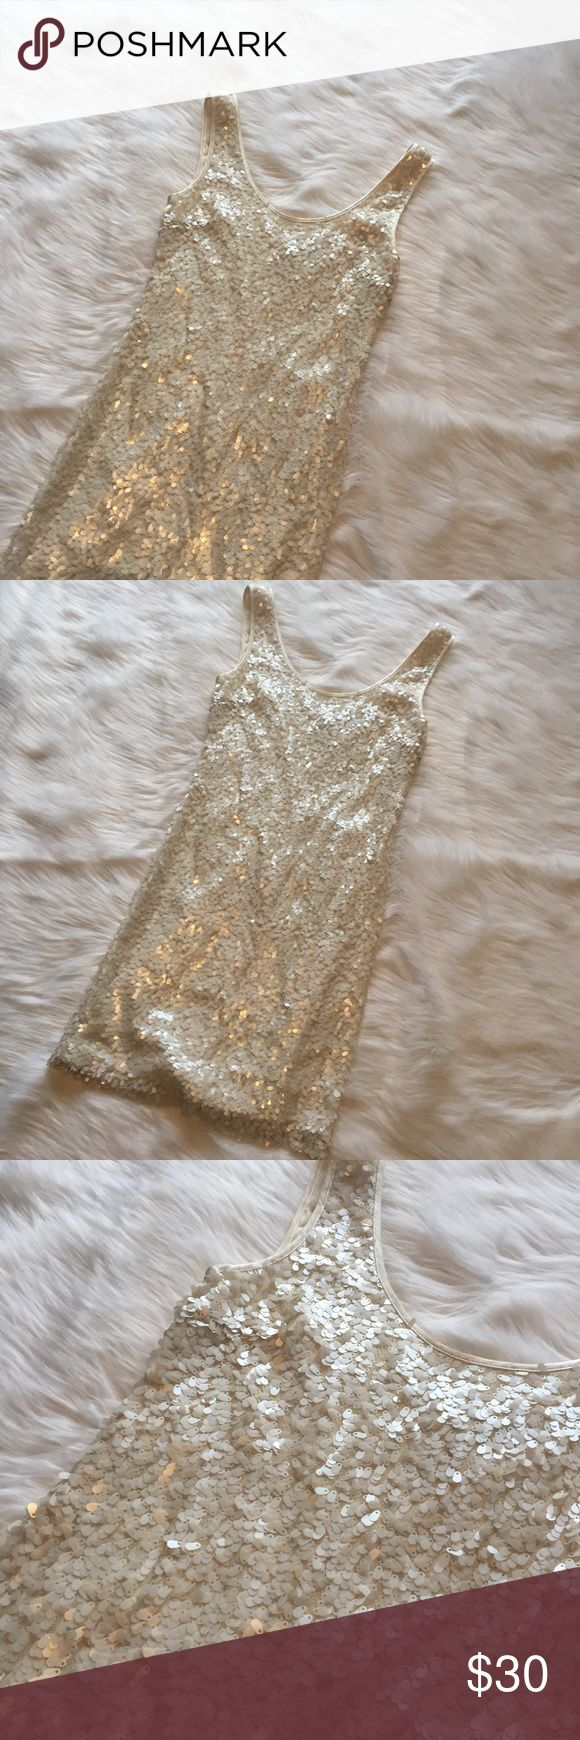 🆕 White House Black Market Cream Sequin Dress White House Black Market Cream Sequin Dress. Excellent used condition - no flaws! Sequins all intact. **Smoke free home. Ask questions. Bundle to save both on shipping and total price. Serious and reasonable offers only (no more than 10% of listing price). Not interested in trades ATM. Sharing is caring!** White House Black Market Dresses Mini